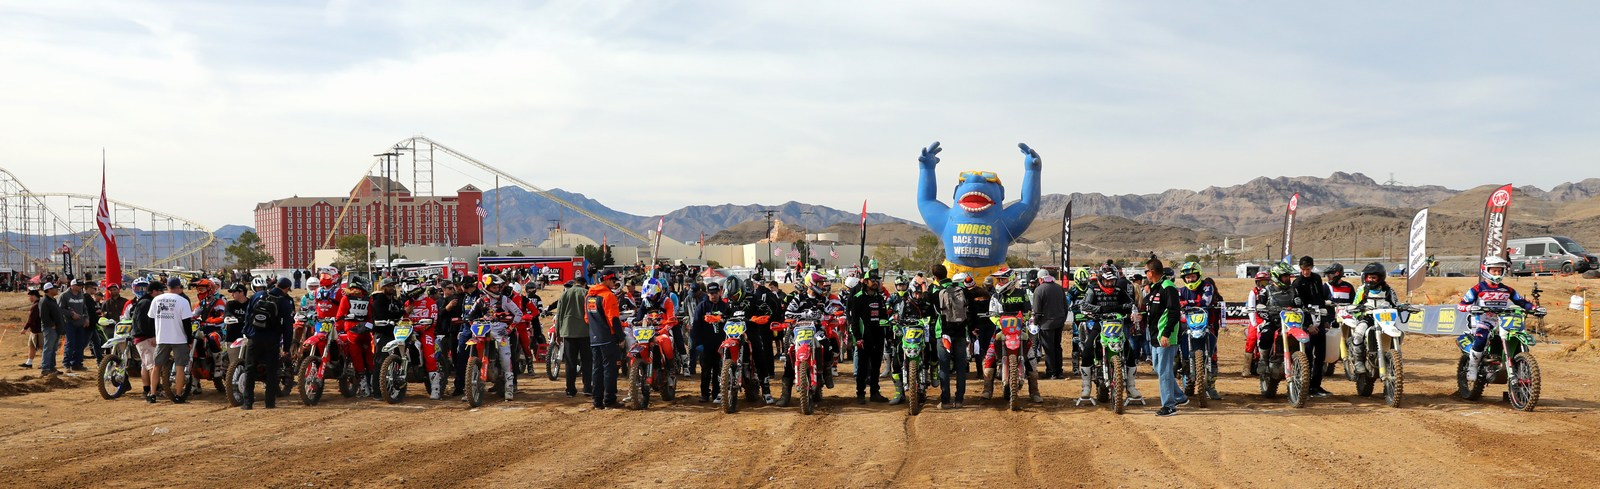 2019-01-pro-motorcycle-lineup-worcs-racing